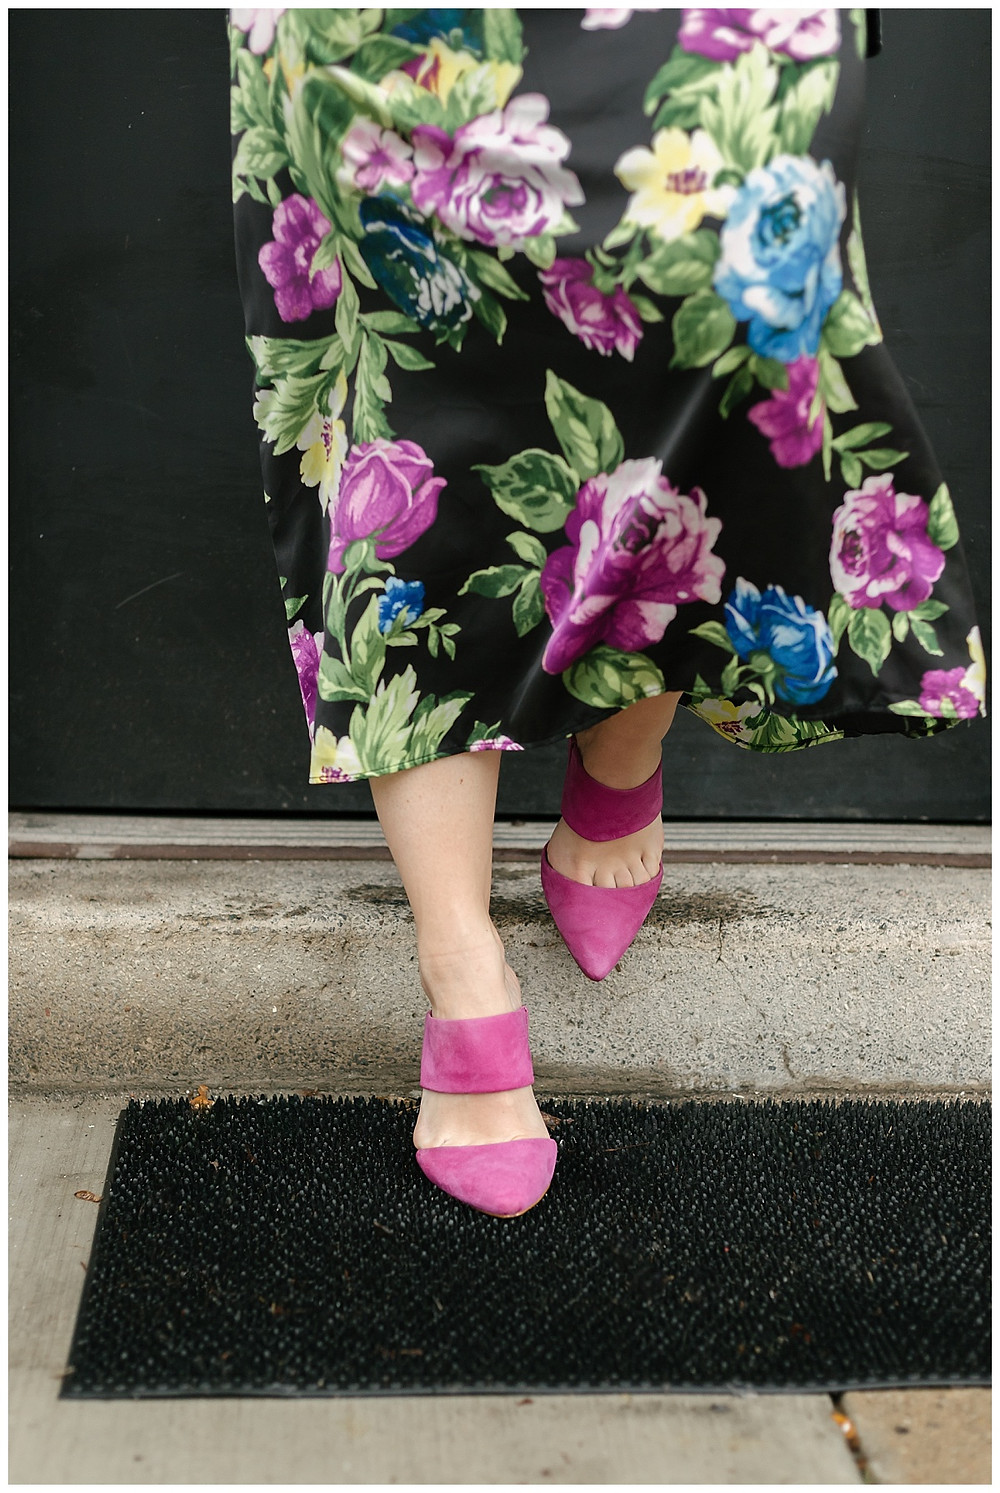 Beautiful pink pumps styled with a floral dress by The Look, photo by LeeAnn K Photography